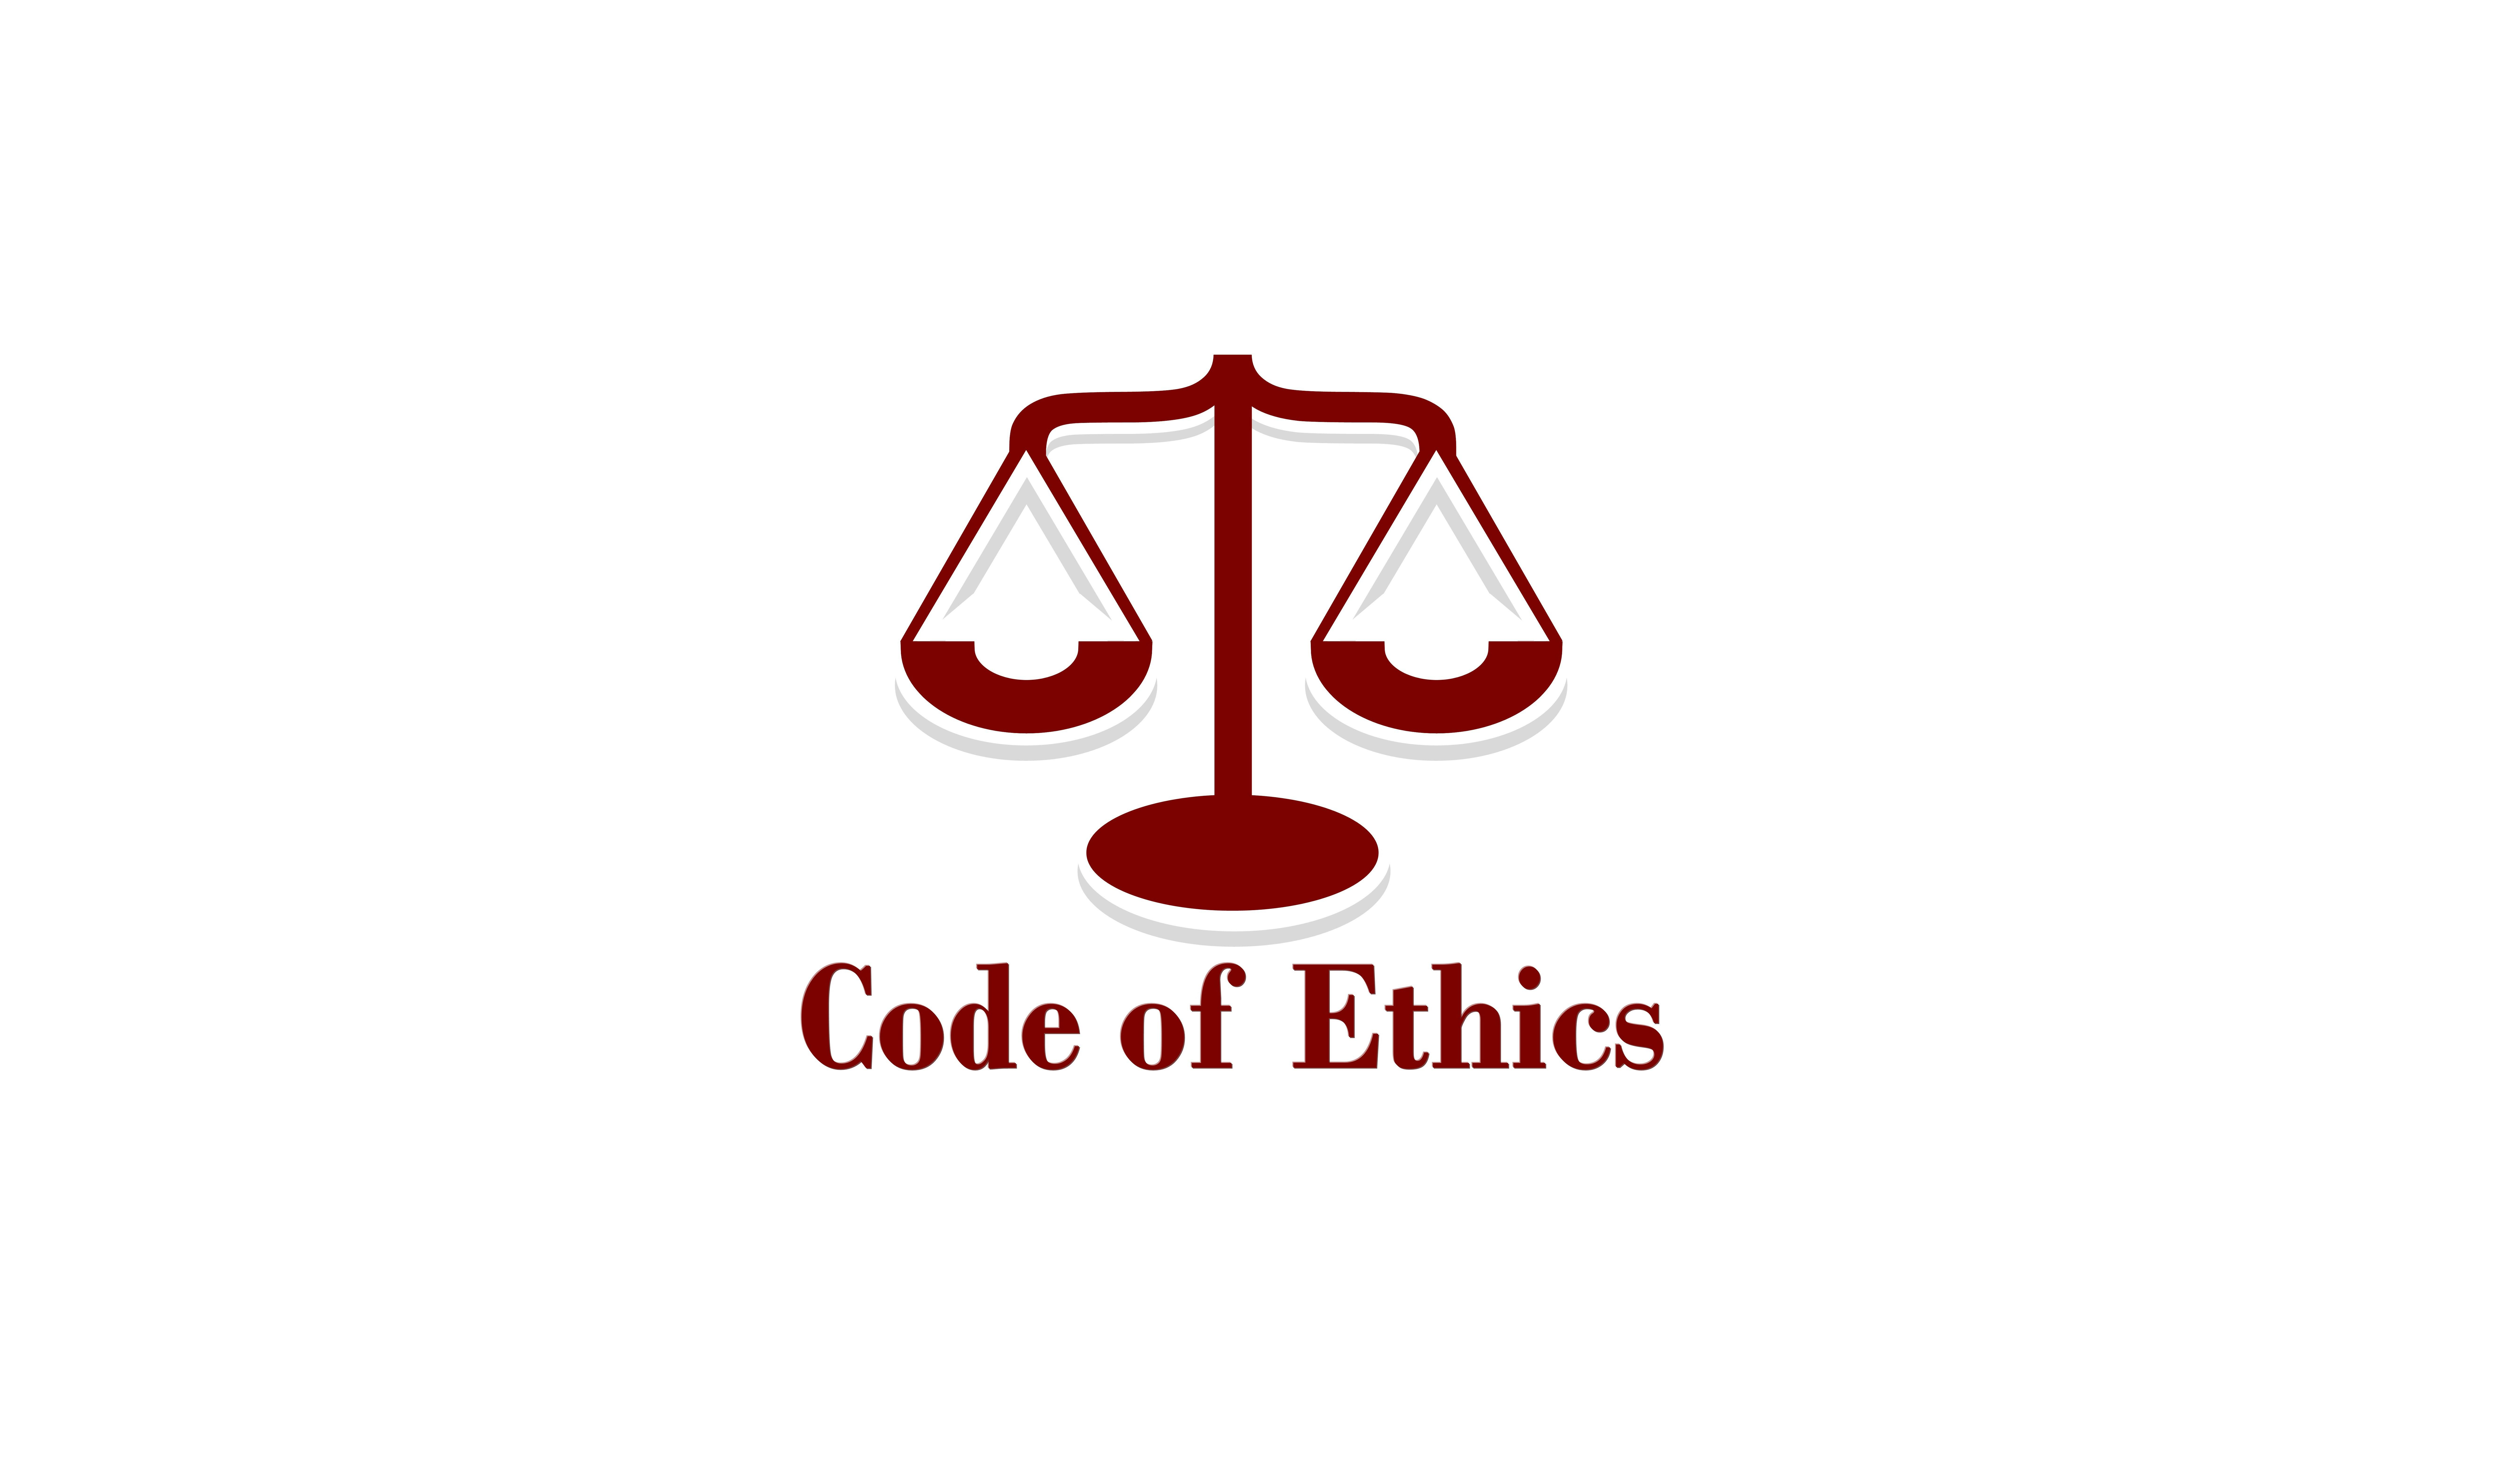 real estate code of ethics Ethics refers to customs, values and practices a society or community consider to be morally sound, by which our behavior is measured ethics are considered especially important when related to the activities of skilled or influential professionals.